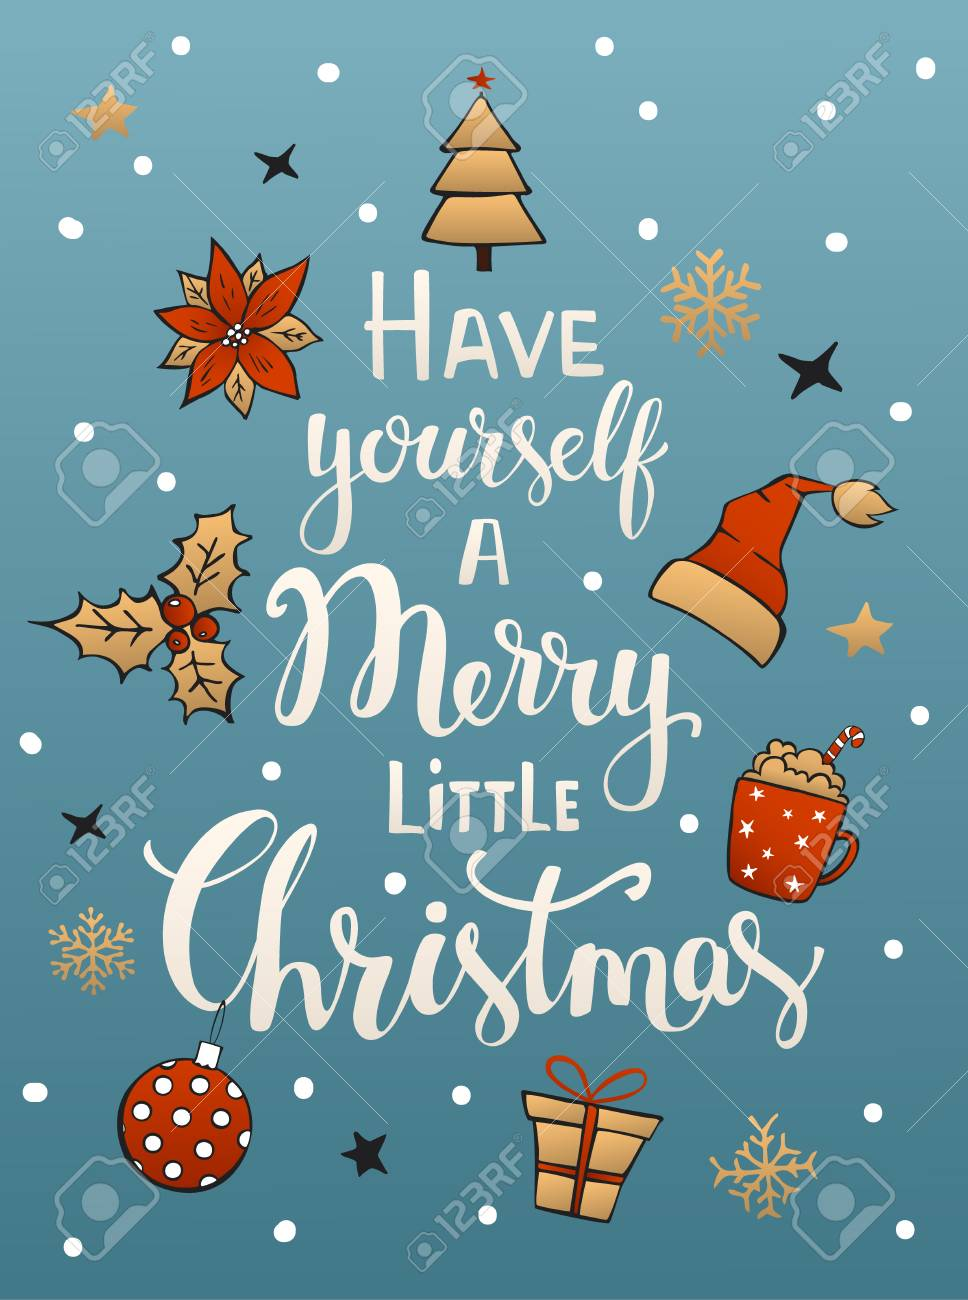 Have yourself a merry little christmas handwritten typographic have yourself a merry little christmas handwritten typographic poster greeting card background with with santa claus solutioingenieria Choice Image